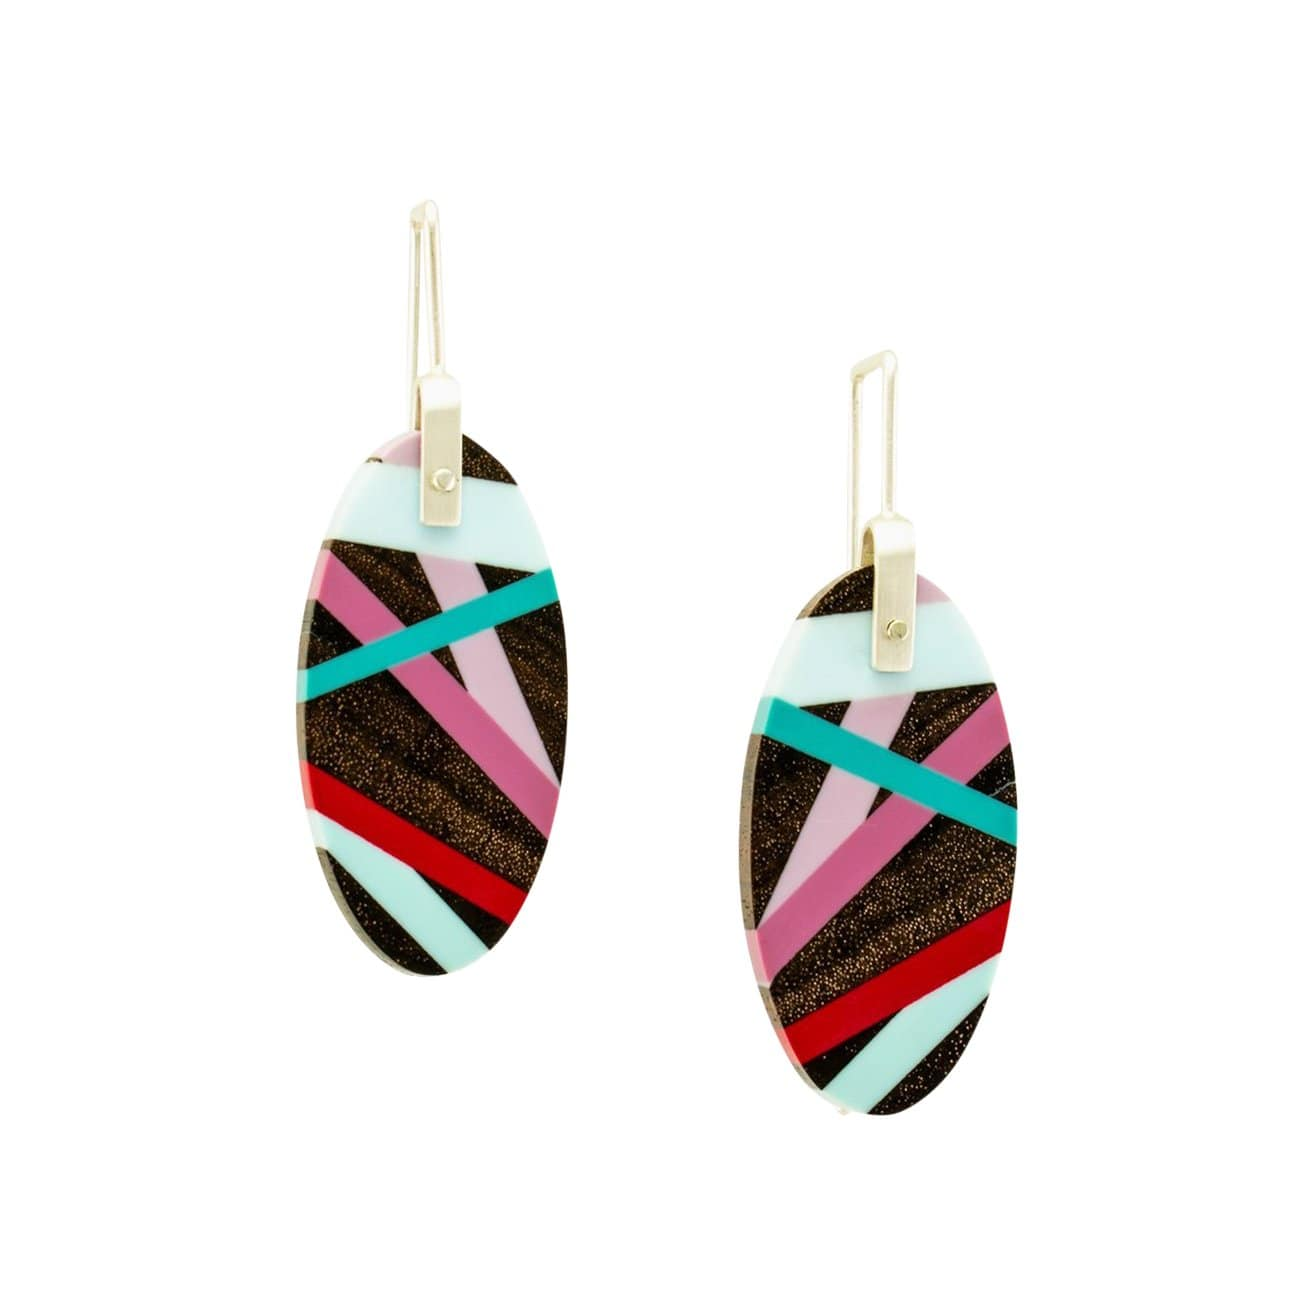 Laura Jaklitsch Jewelry Earrings Mini Wood with Red/Blue Inlay Hanging Earrings